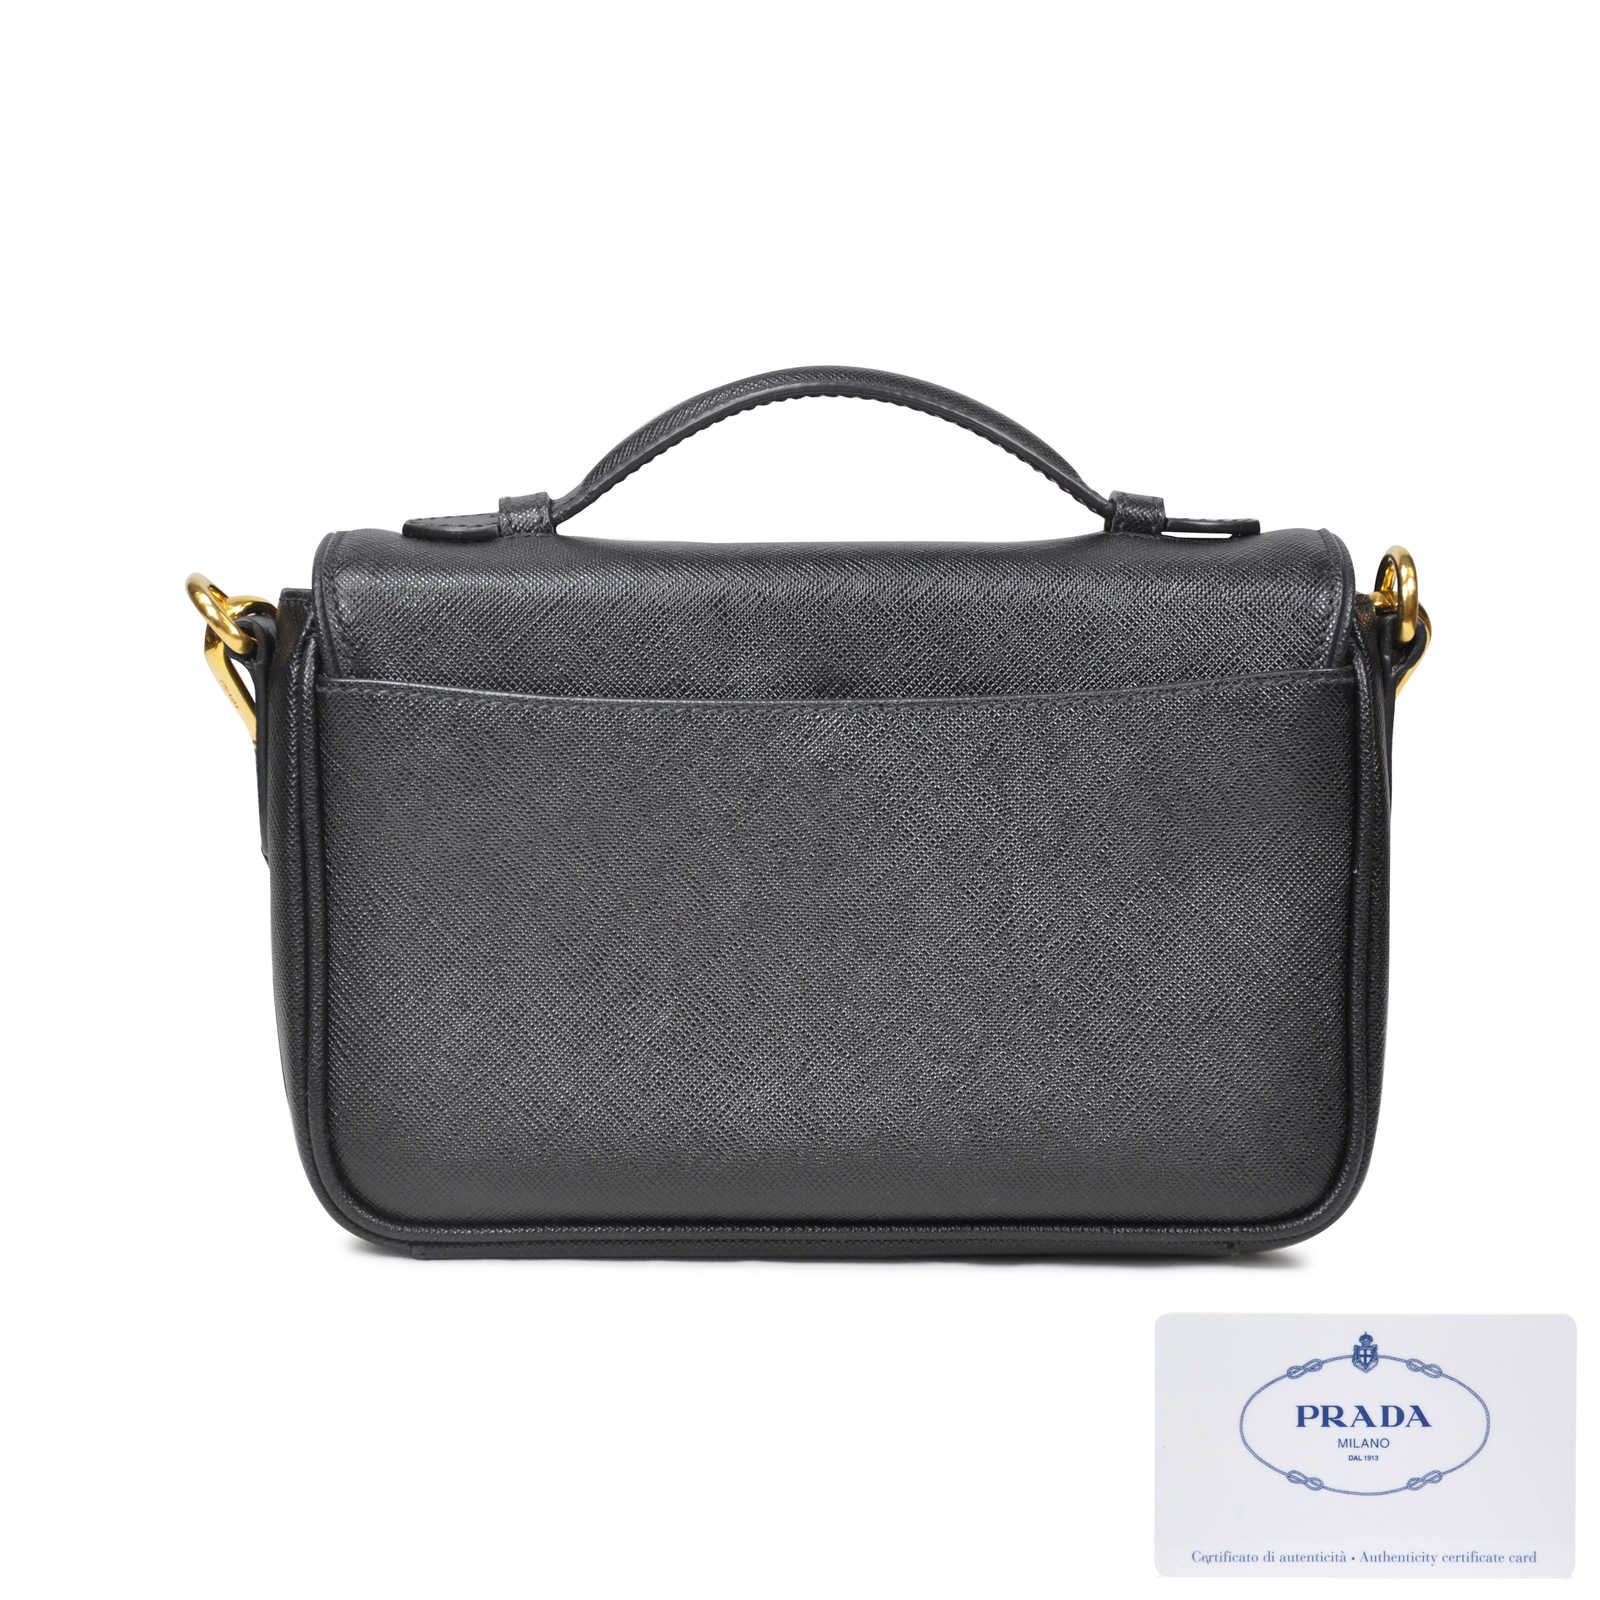 e9121dc862ae ... release date authentic pre owned prada saffiano mini crossbody pss 020  00015 thumbnail d3cb4 af9b6 ...